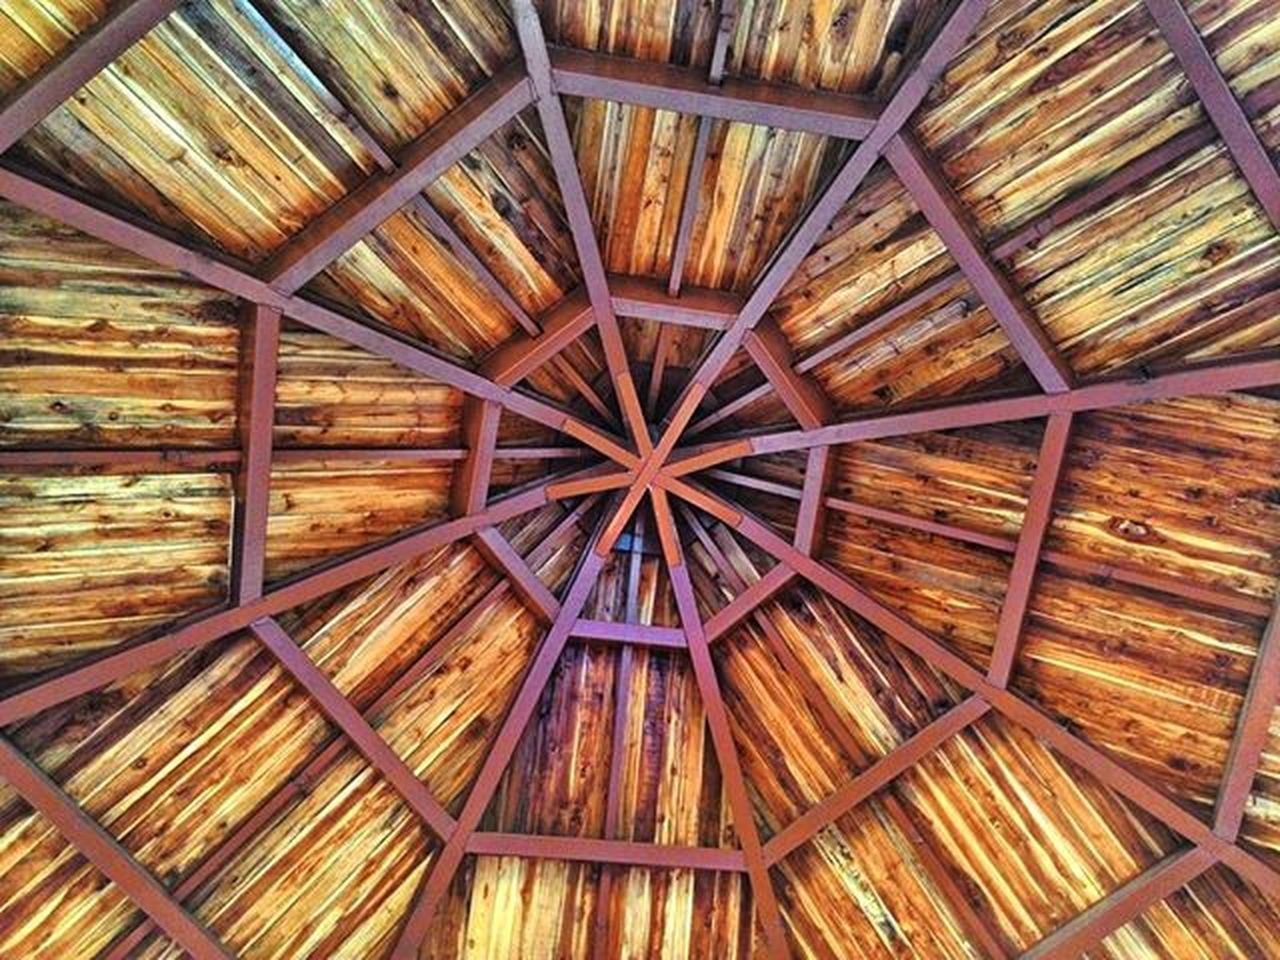 Spider web of woods... Wood Pattern Inside Hut Spiderweb Web Random Shot Indian_photographers Asus Zenfone Asushlobal Zenfoneglobal _soi Repostingindia Instagram